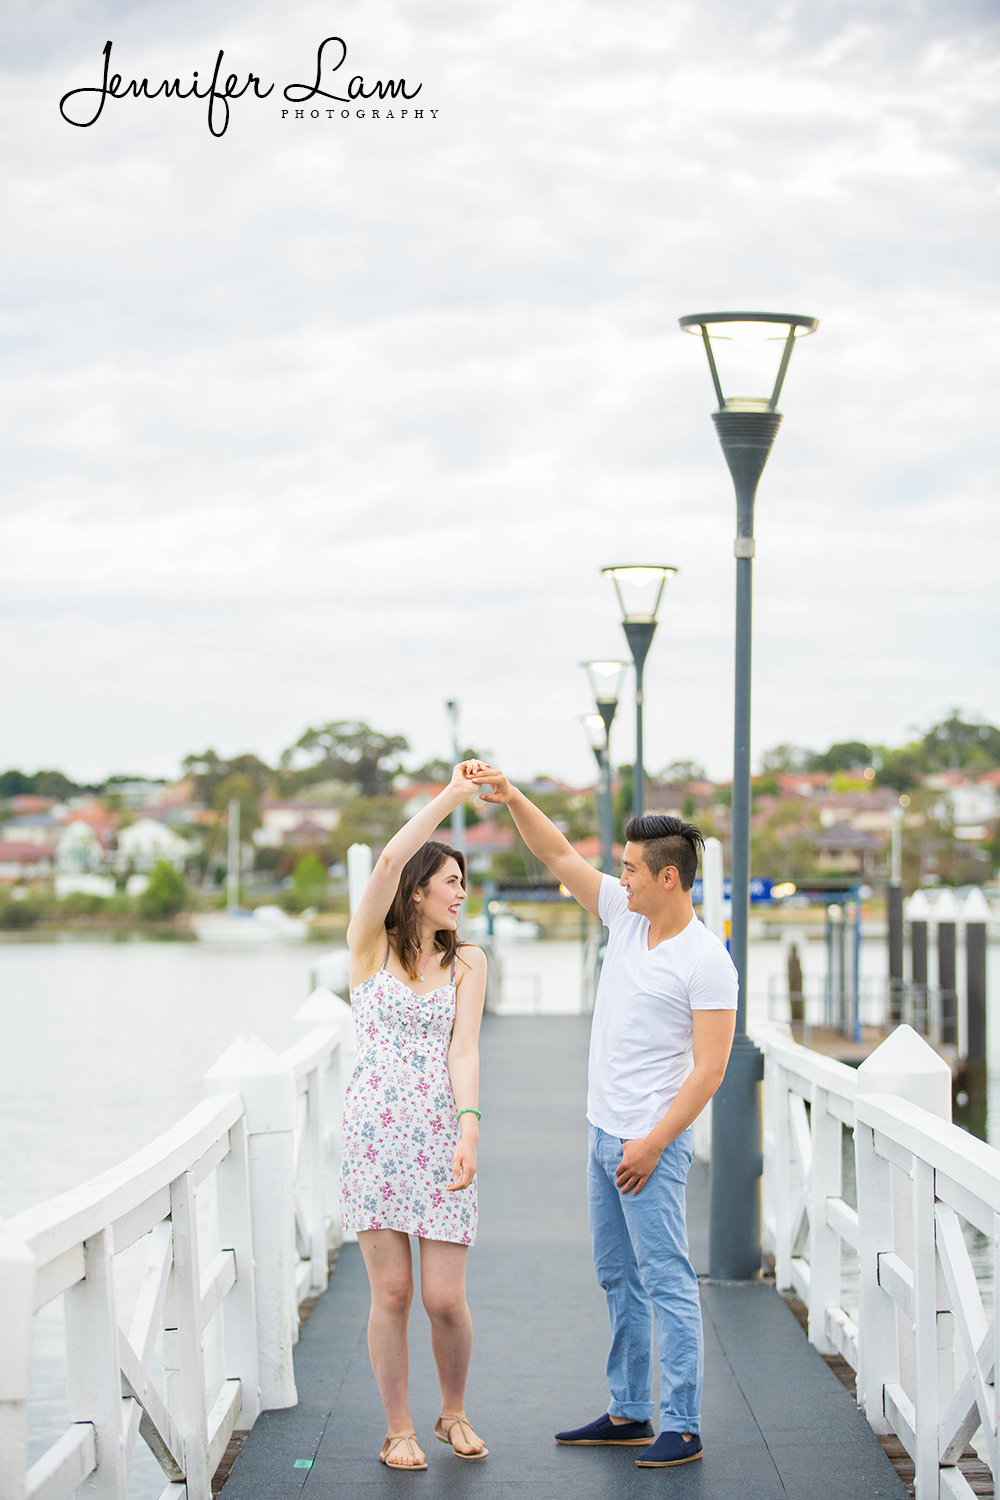 Sydney Pre-Wedding Photography - Jennifer Lam Photography (8).jpg